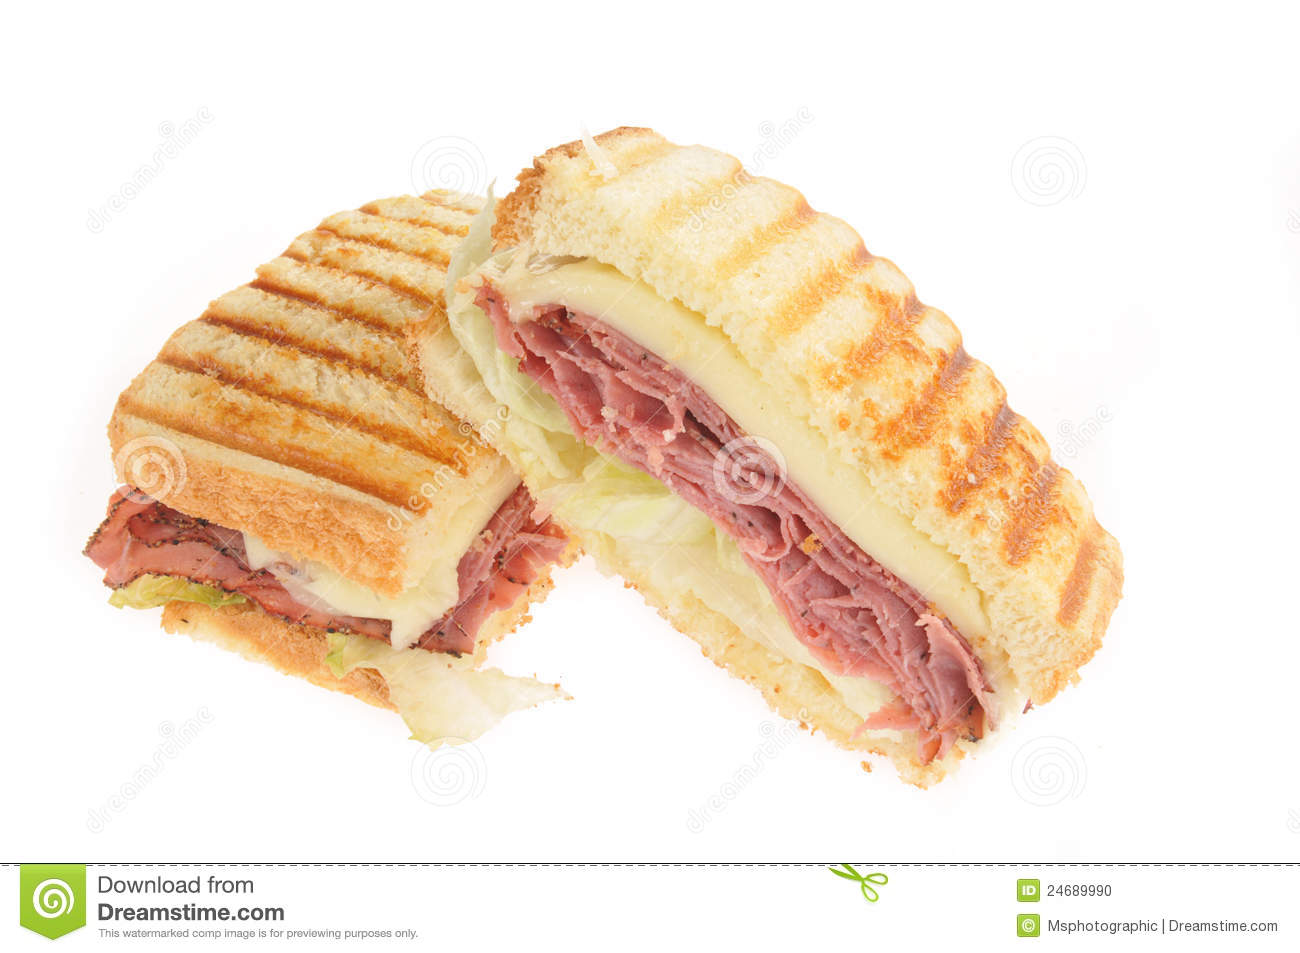 Grilled Roast Beef And Cheese Panini Or Sandwich Stock Photo - Image ...